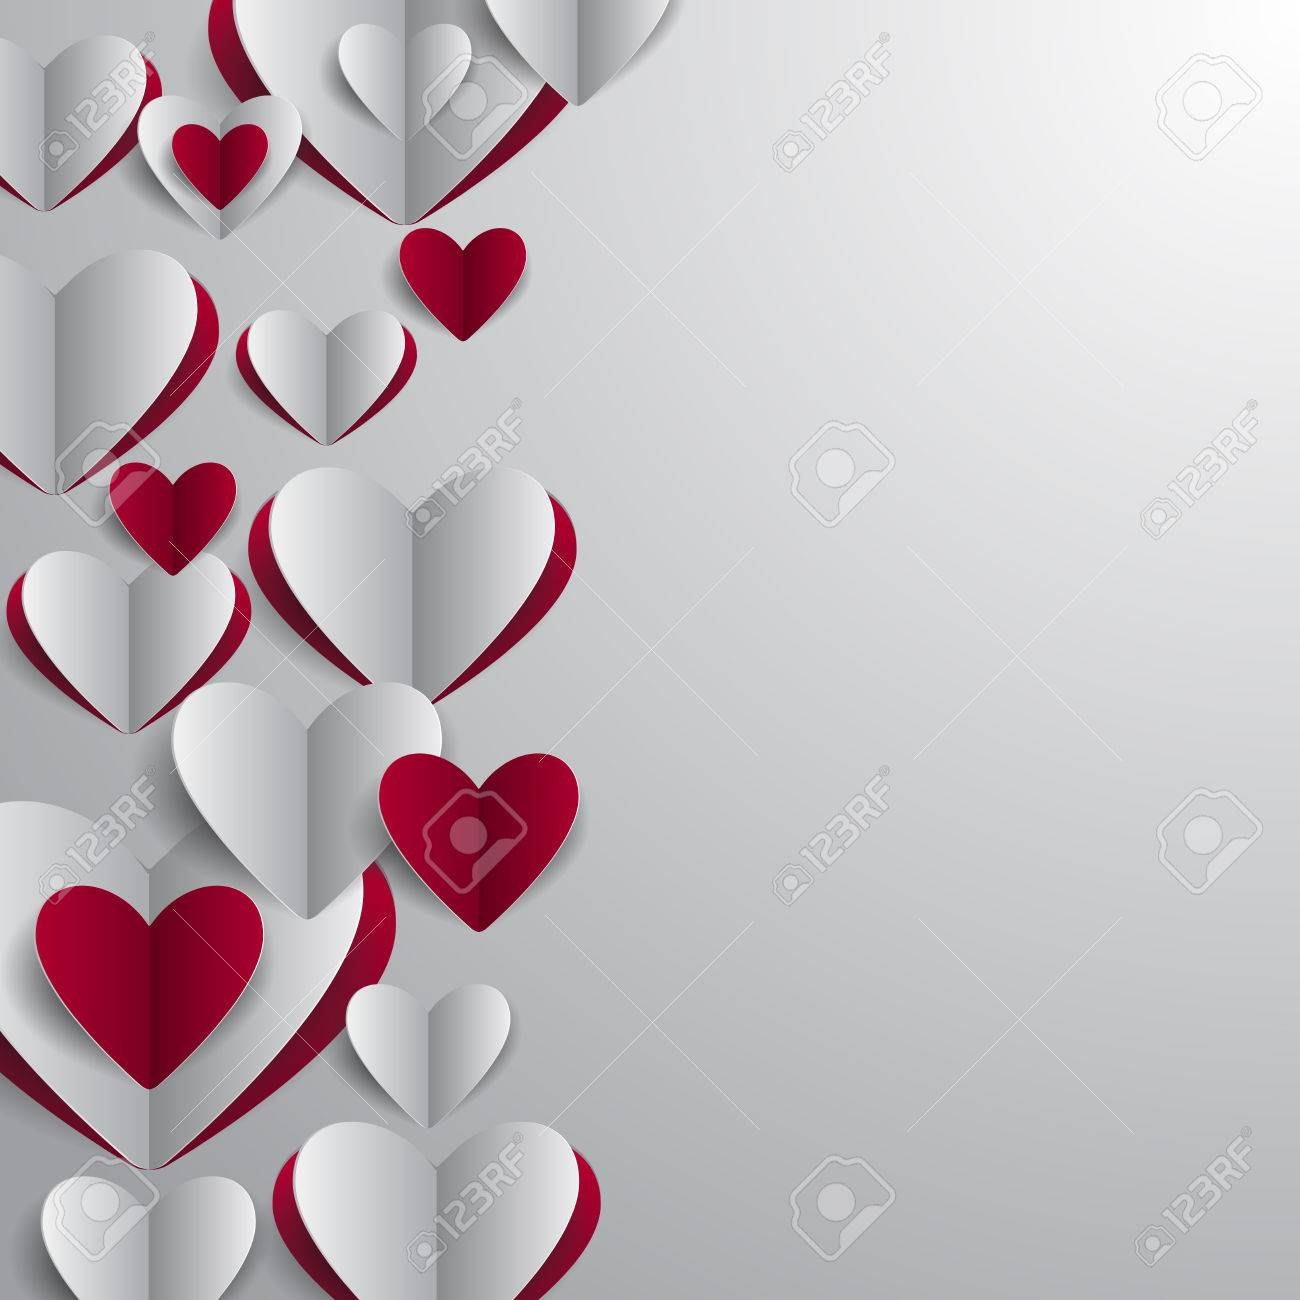 Illustration of valentines day card template with paper heart illustration of valentines day card template with paper heart cutouts stock vector 36597242 maxwellsz